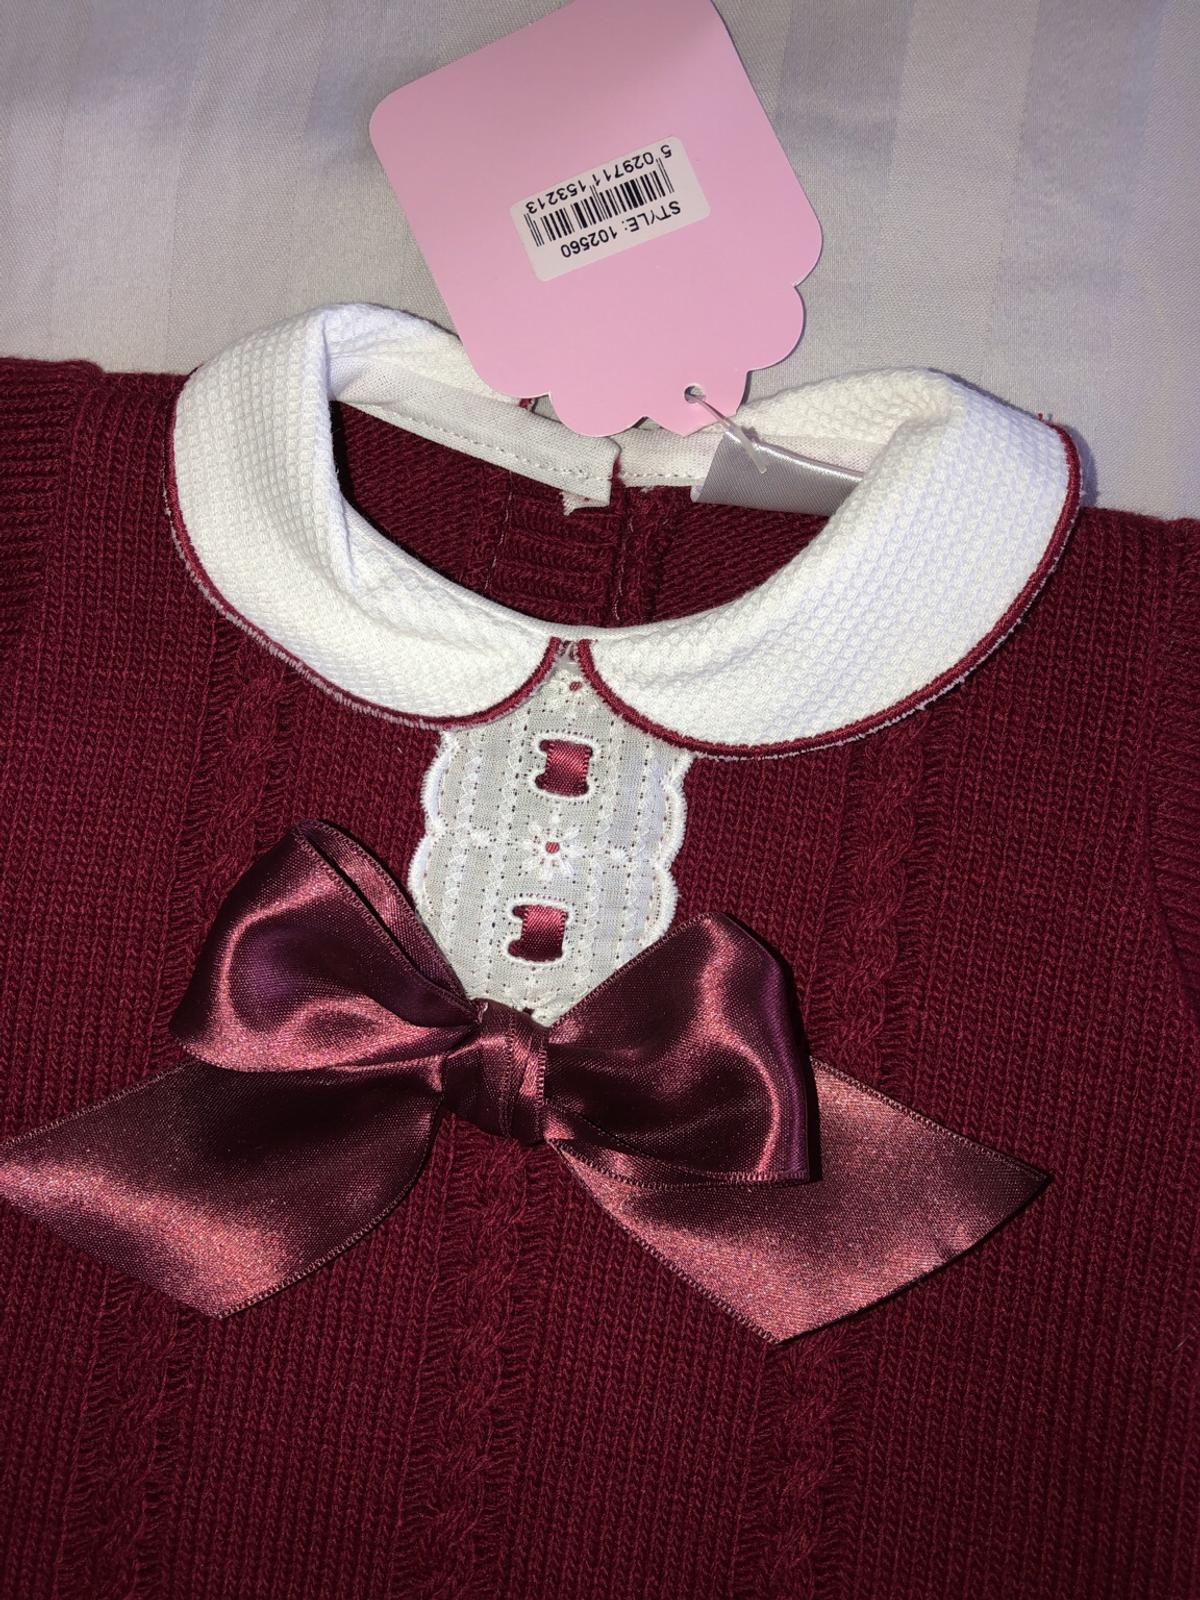 aad201679 Spanish baby girl knitted Dress in DA8 Bexley for £10.00 for sale ...